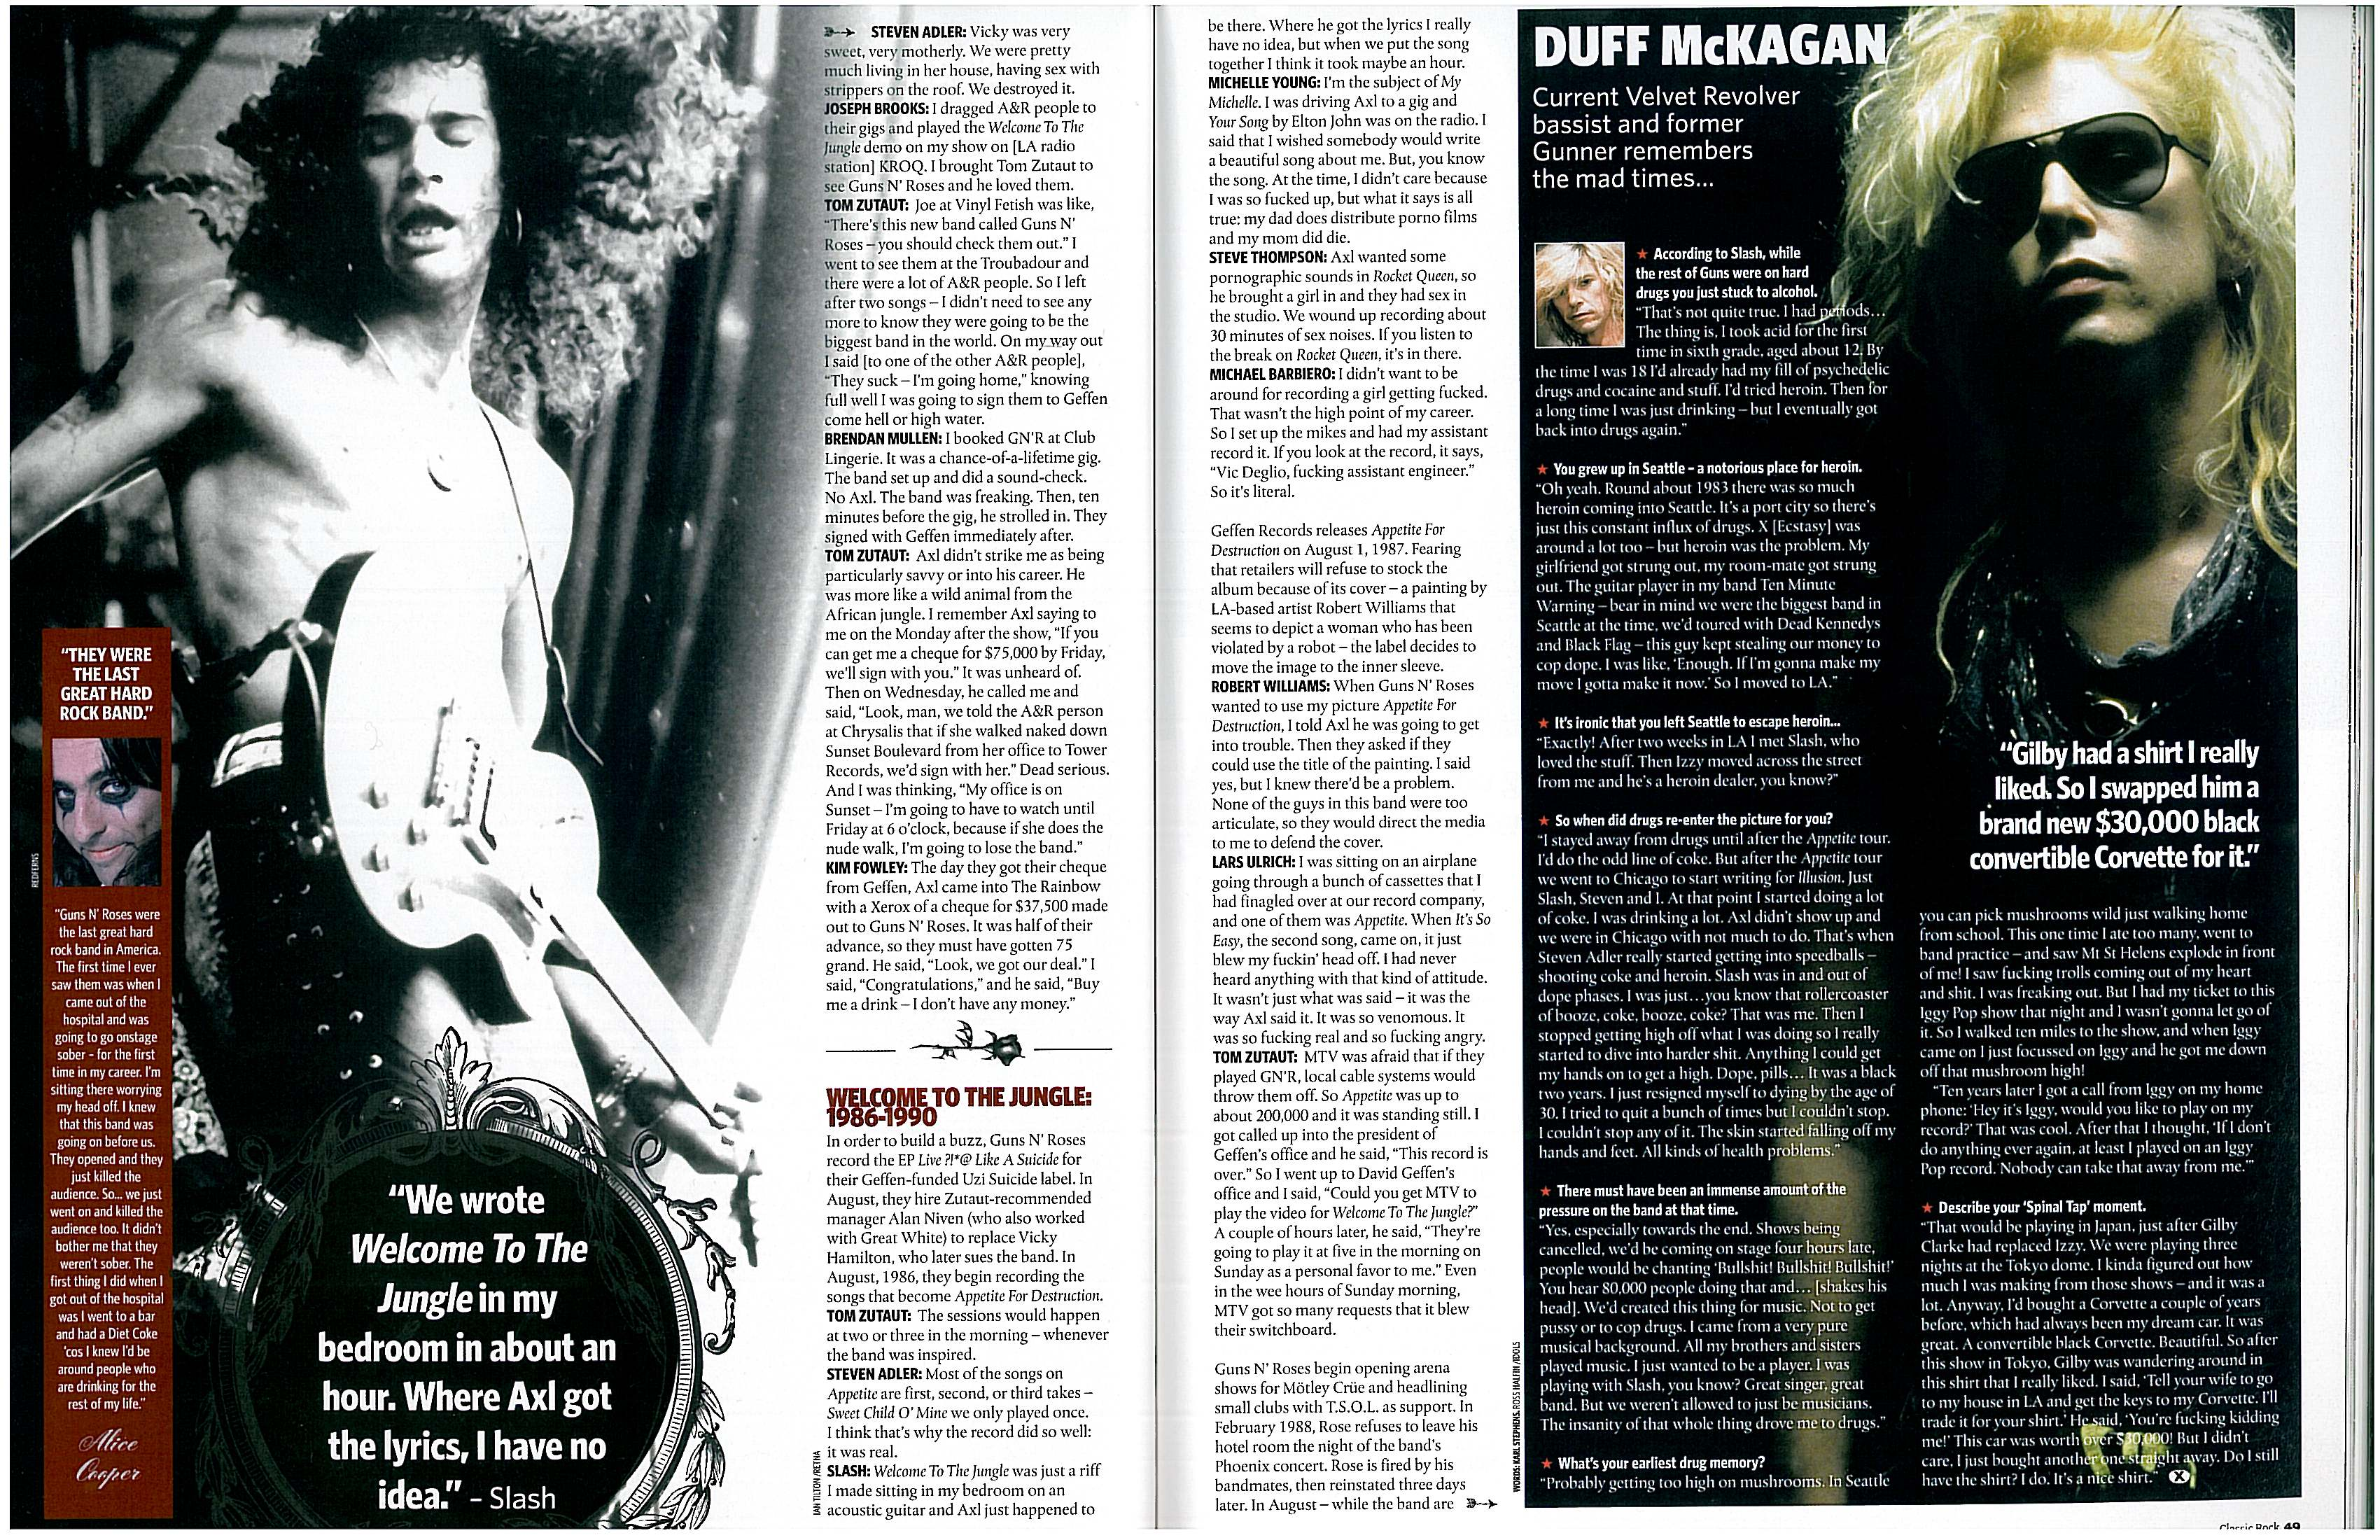 2005.04.XX - Quotes from Duff, Steven and Slash in Classic Rock Magazine Q3v0qPKd_o